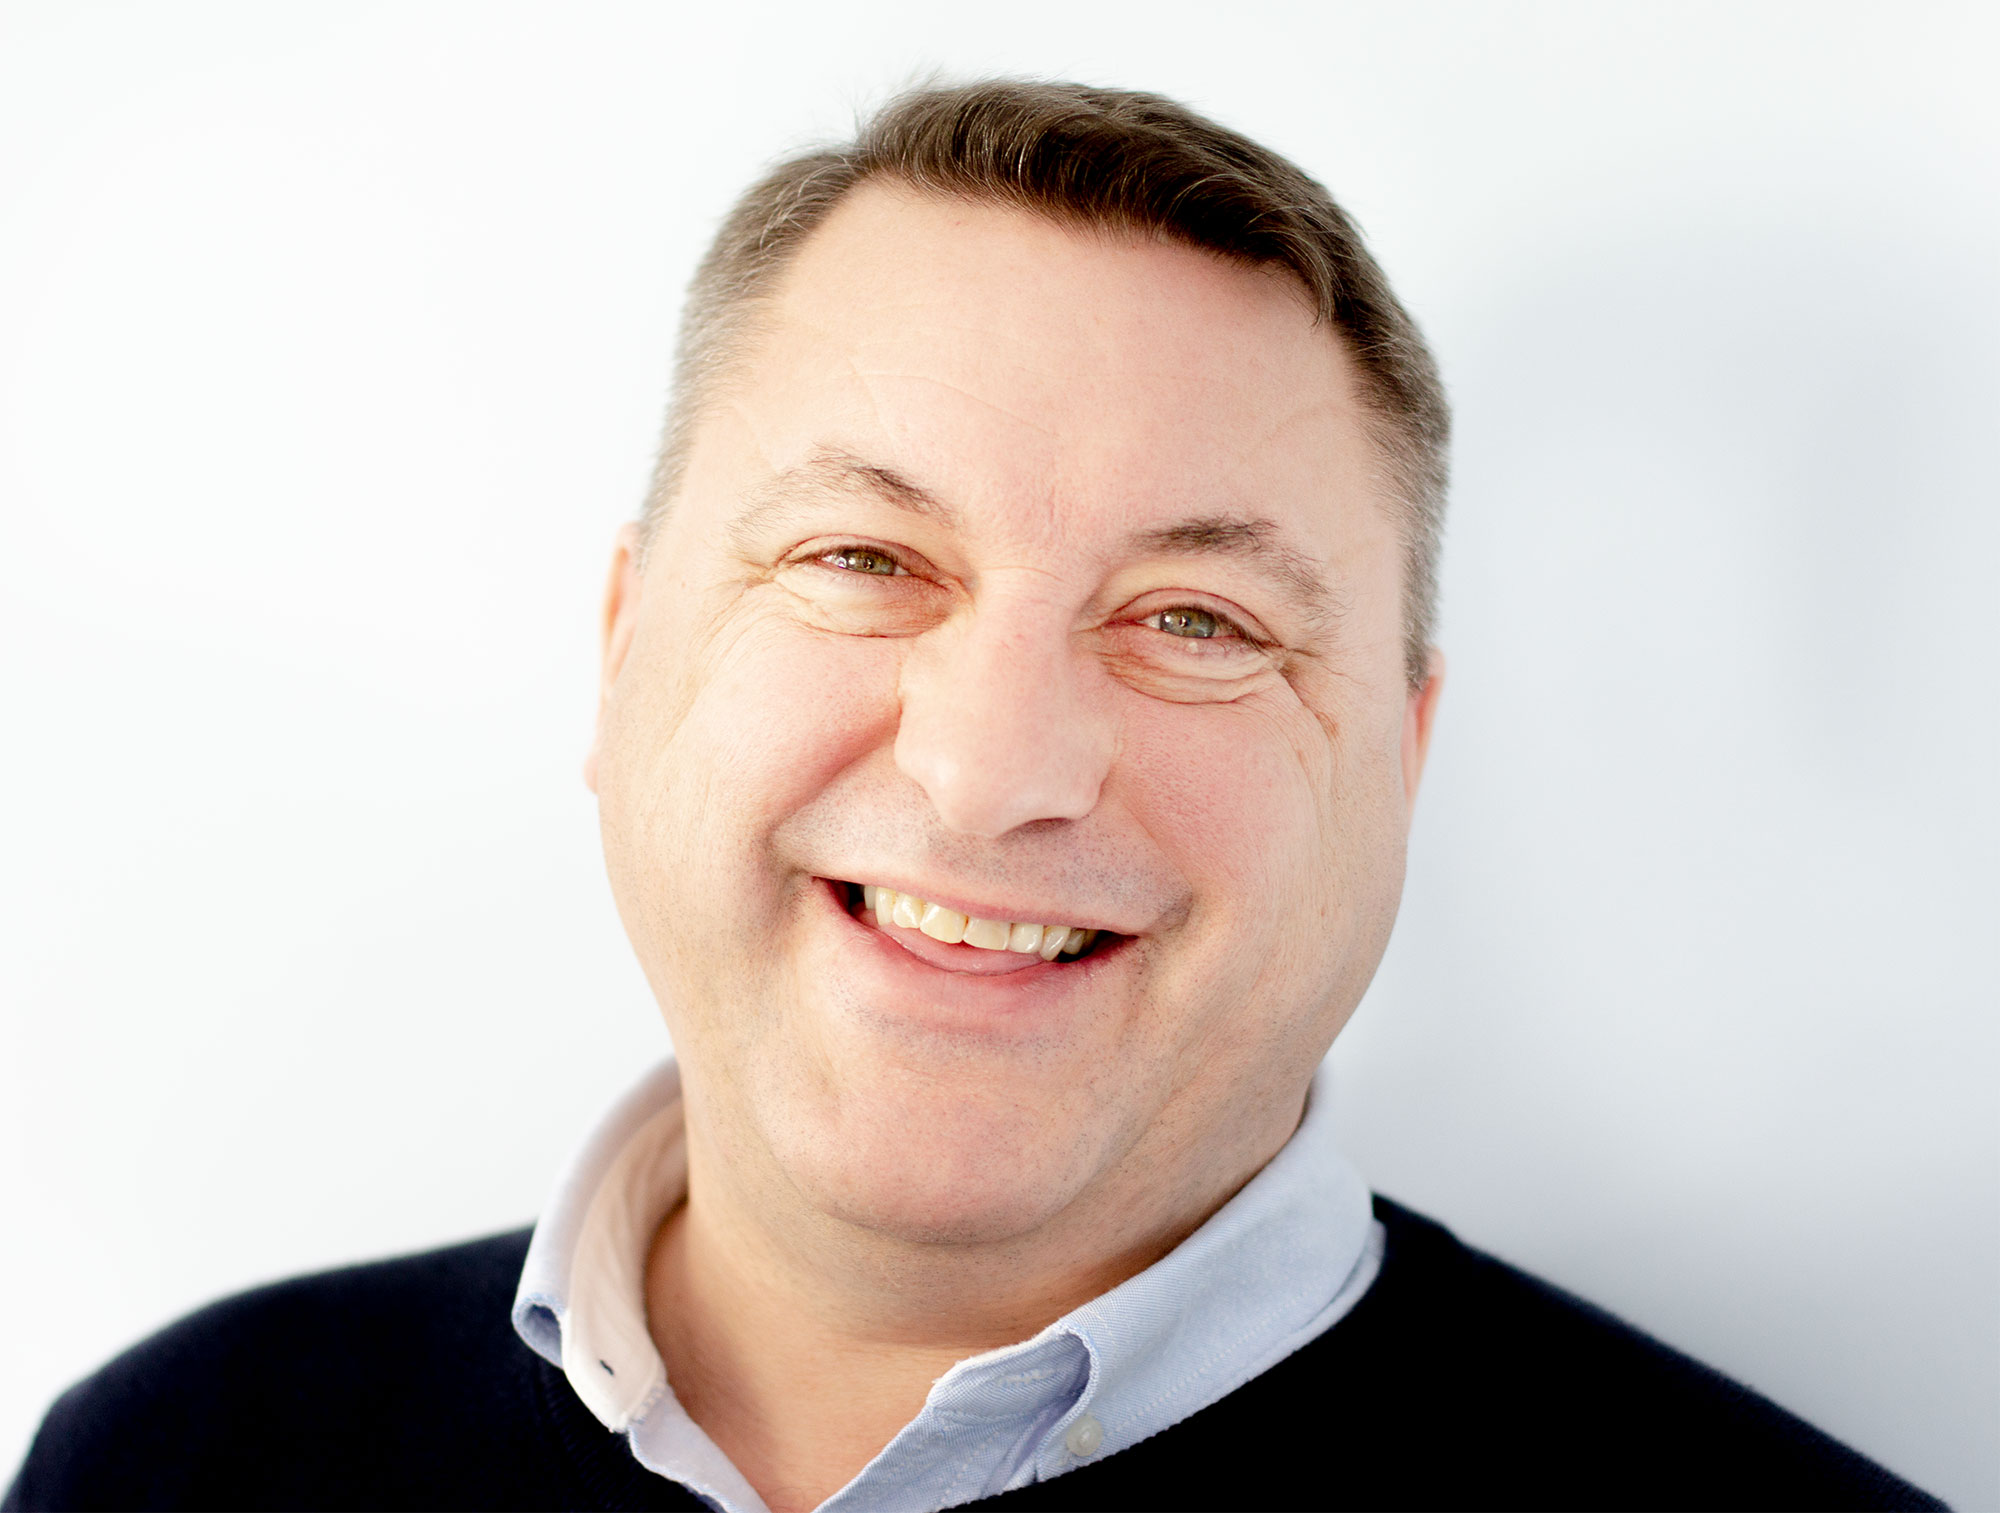 Mike Richards, Founder and MD of Treasury Recruitment Company